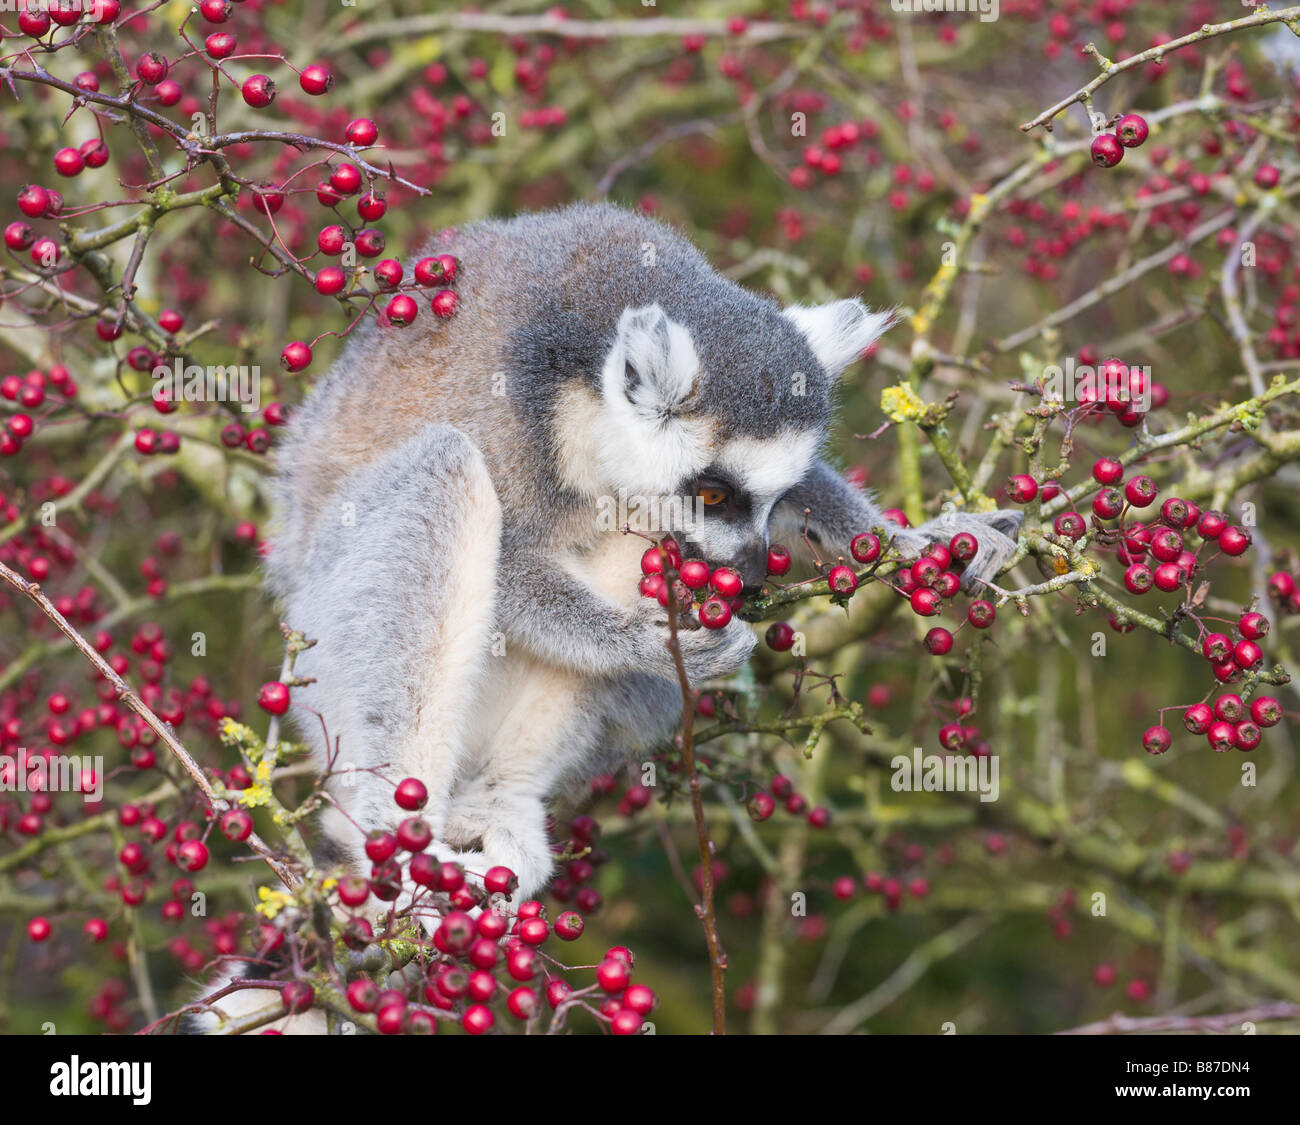 What Do Ring Tailed Lemurs Eat